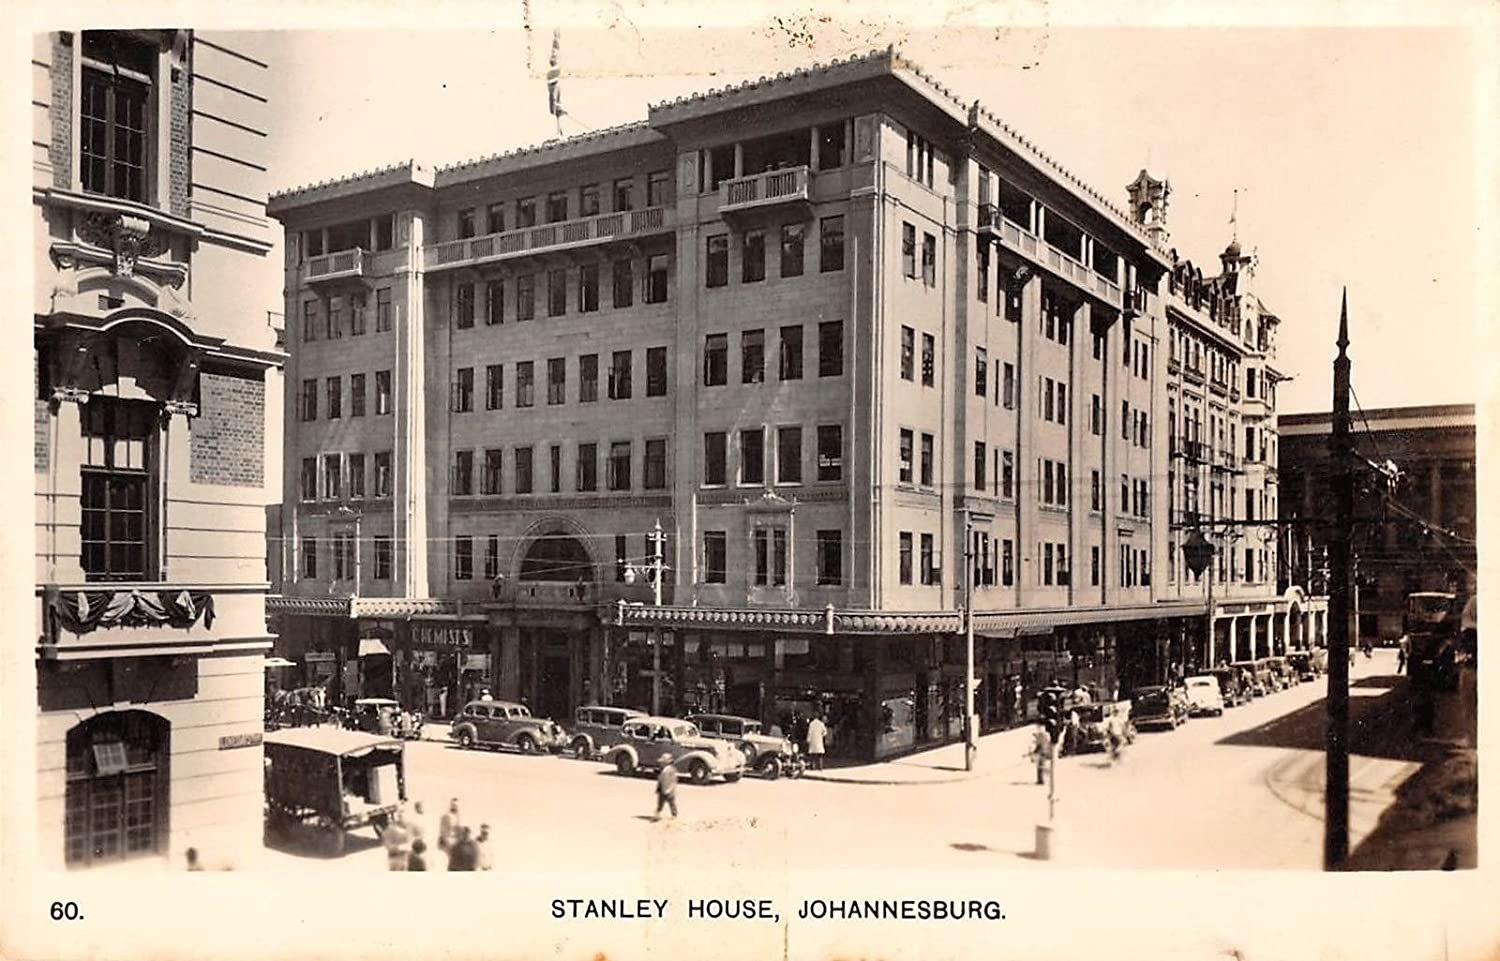 Johannesburg South Africa Stanley House Real Postc lowest price Antique Translated Photo